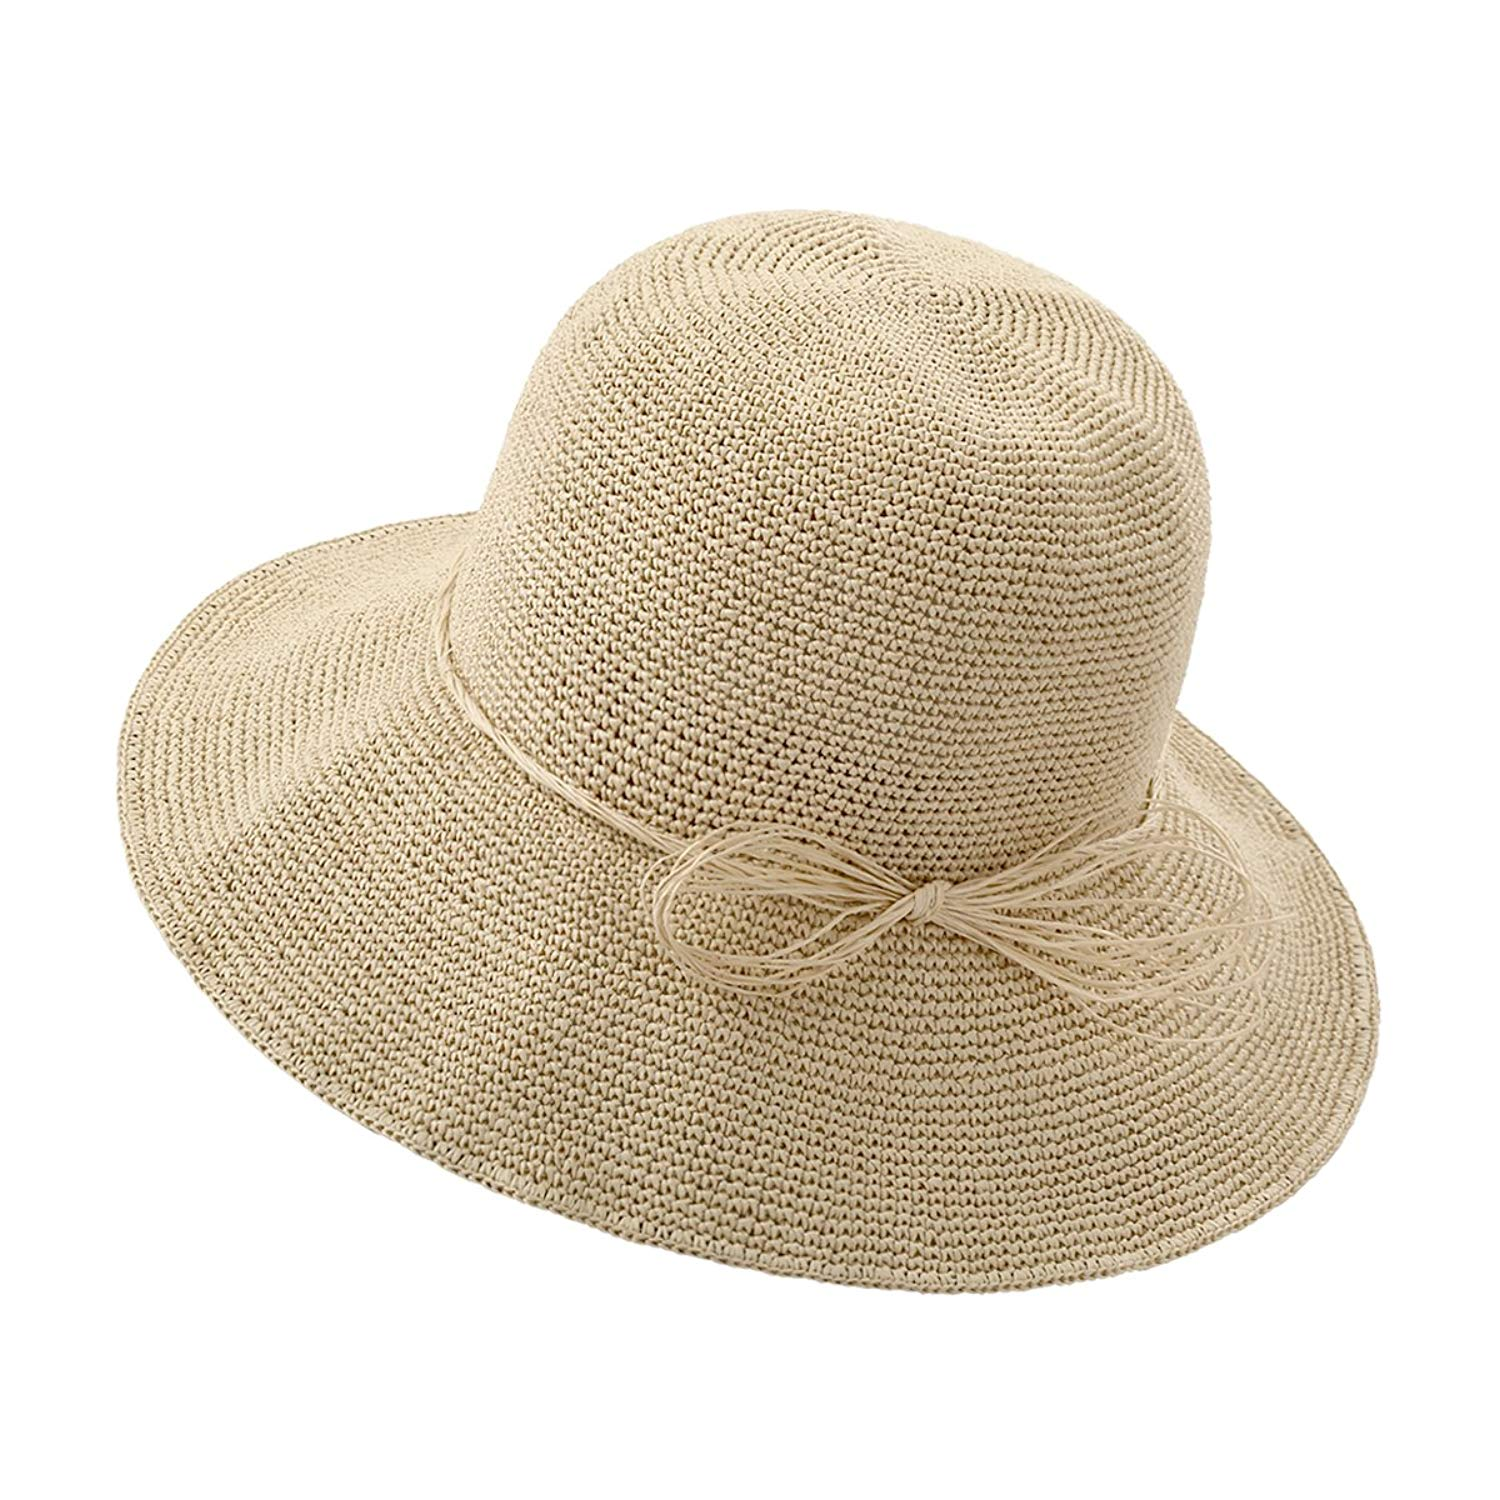 ead6fae8a9c Get Quotations · Erhverv Handmade Paper Straw Hat Packable Sun Hat Beach Hat  For Woman and Girls